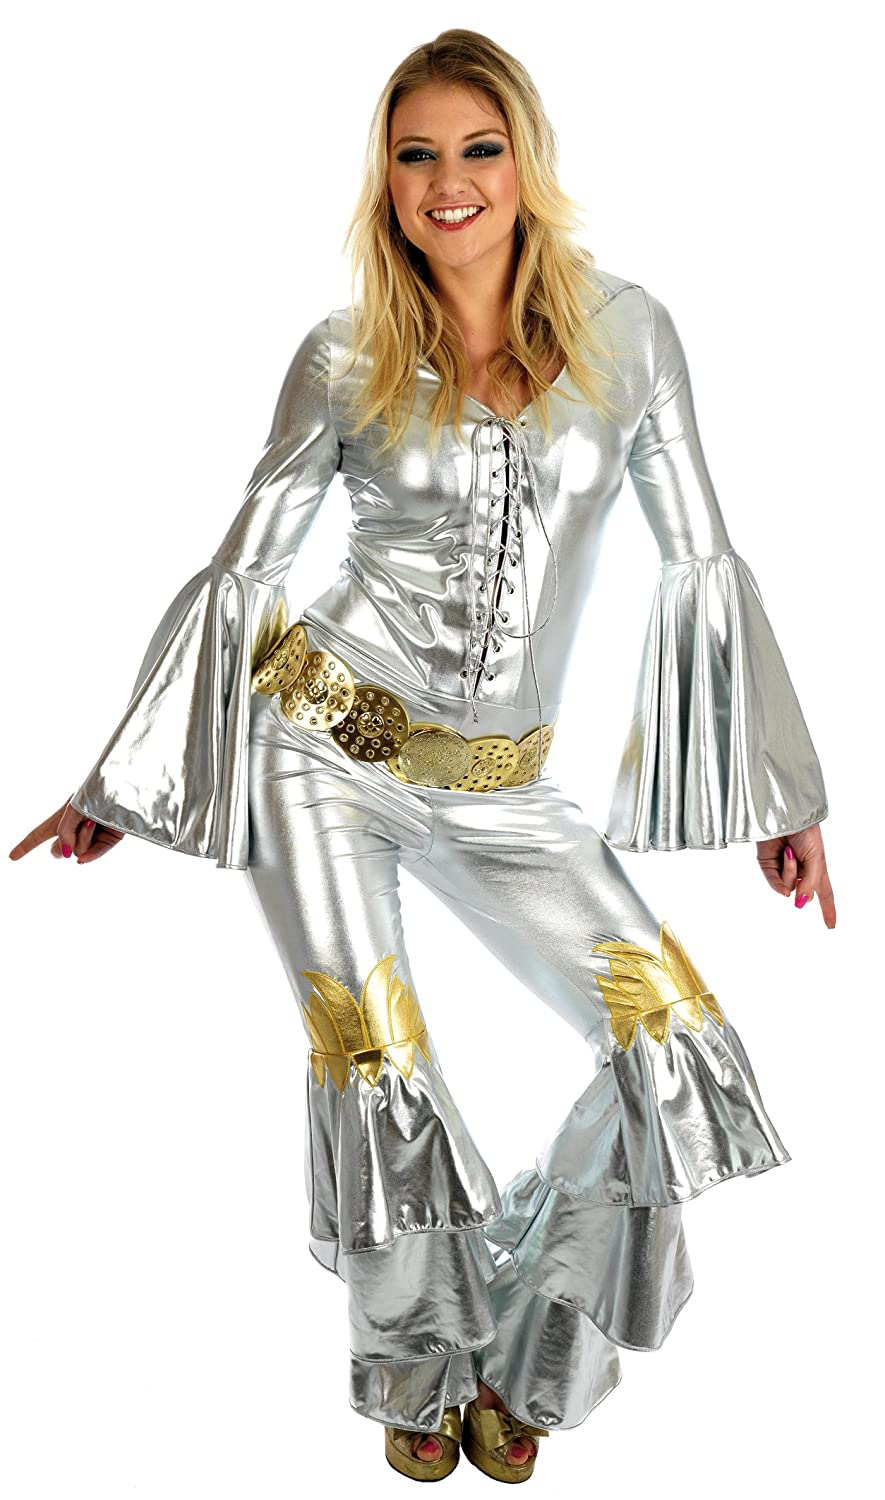 ABBA DANCING QUEEN FANCY DRESS COSTUME XXL 20-22 (disfraz): Amazon.es: Juguetes y juegos